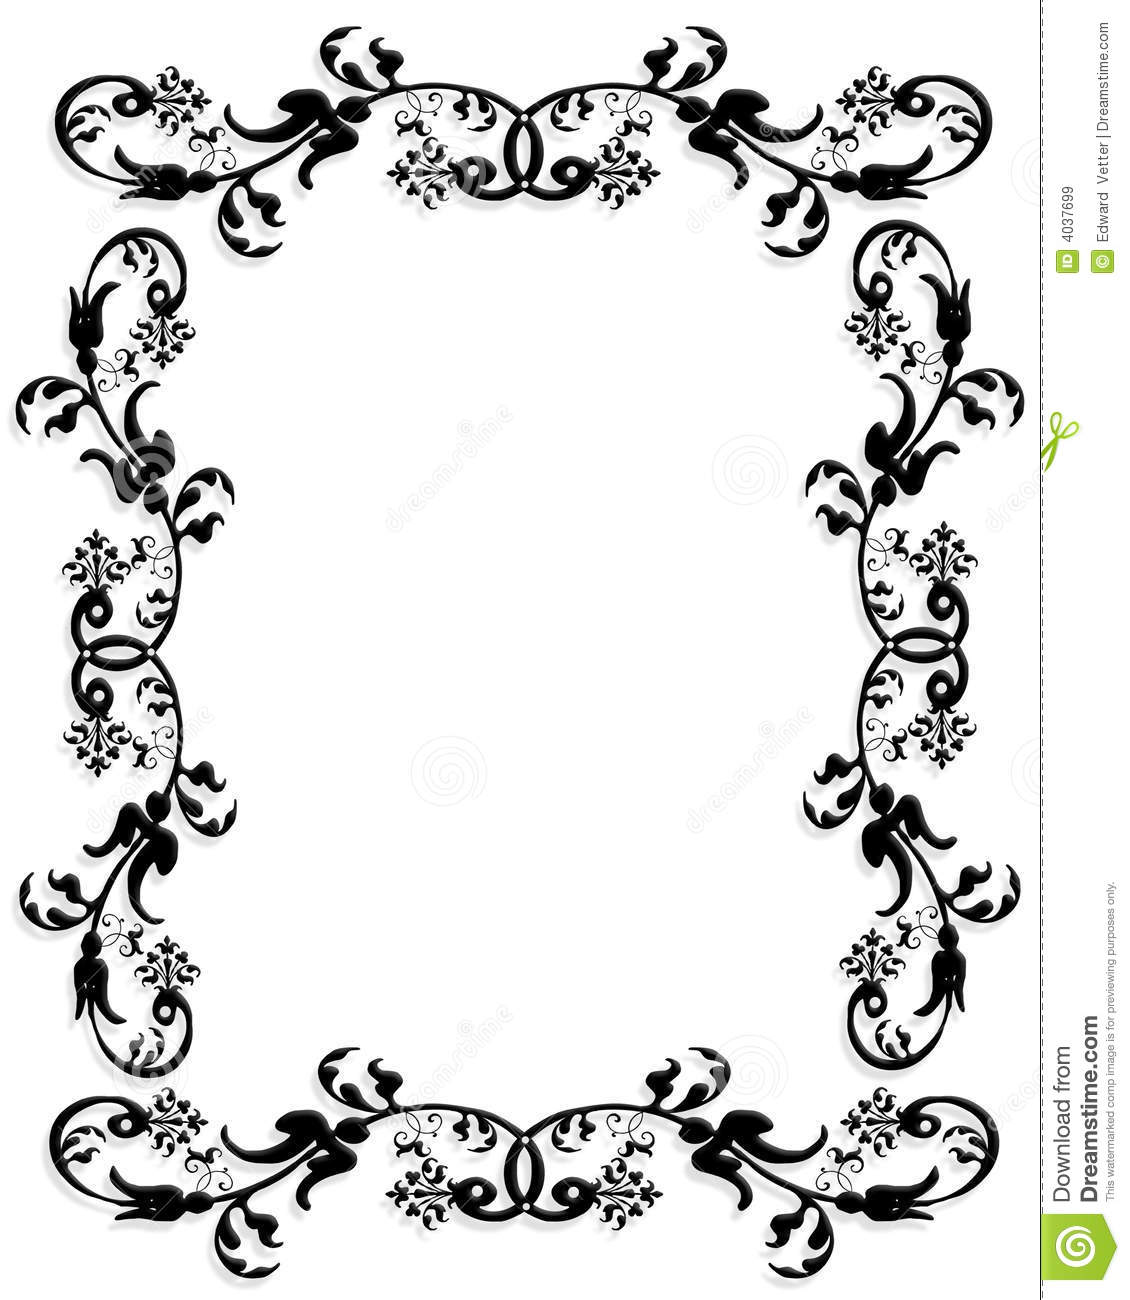 3d Border Frame Black Stock Illustration Illustration Of Design